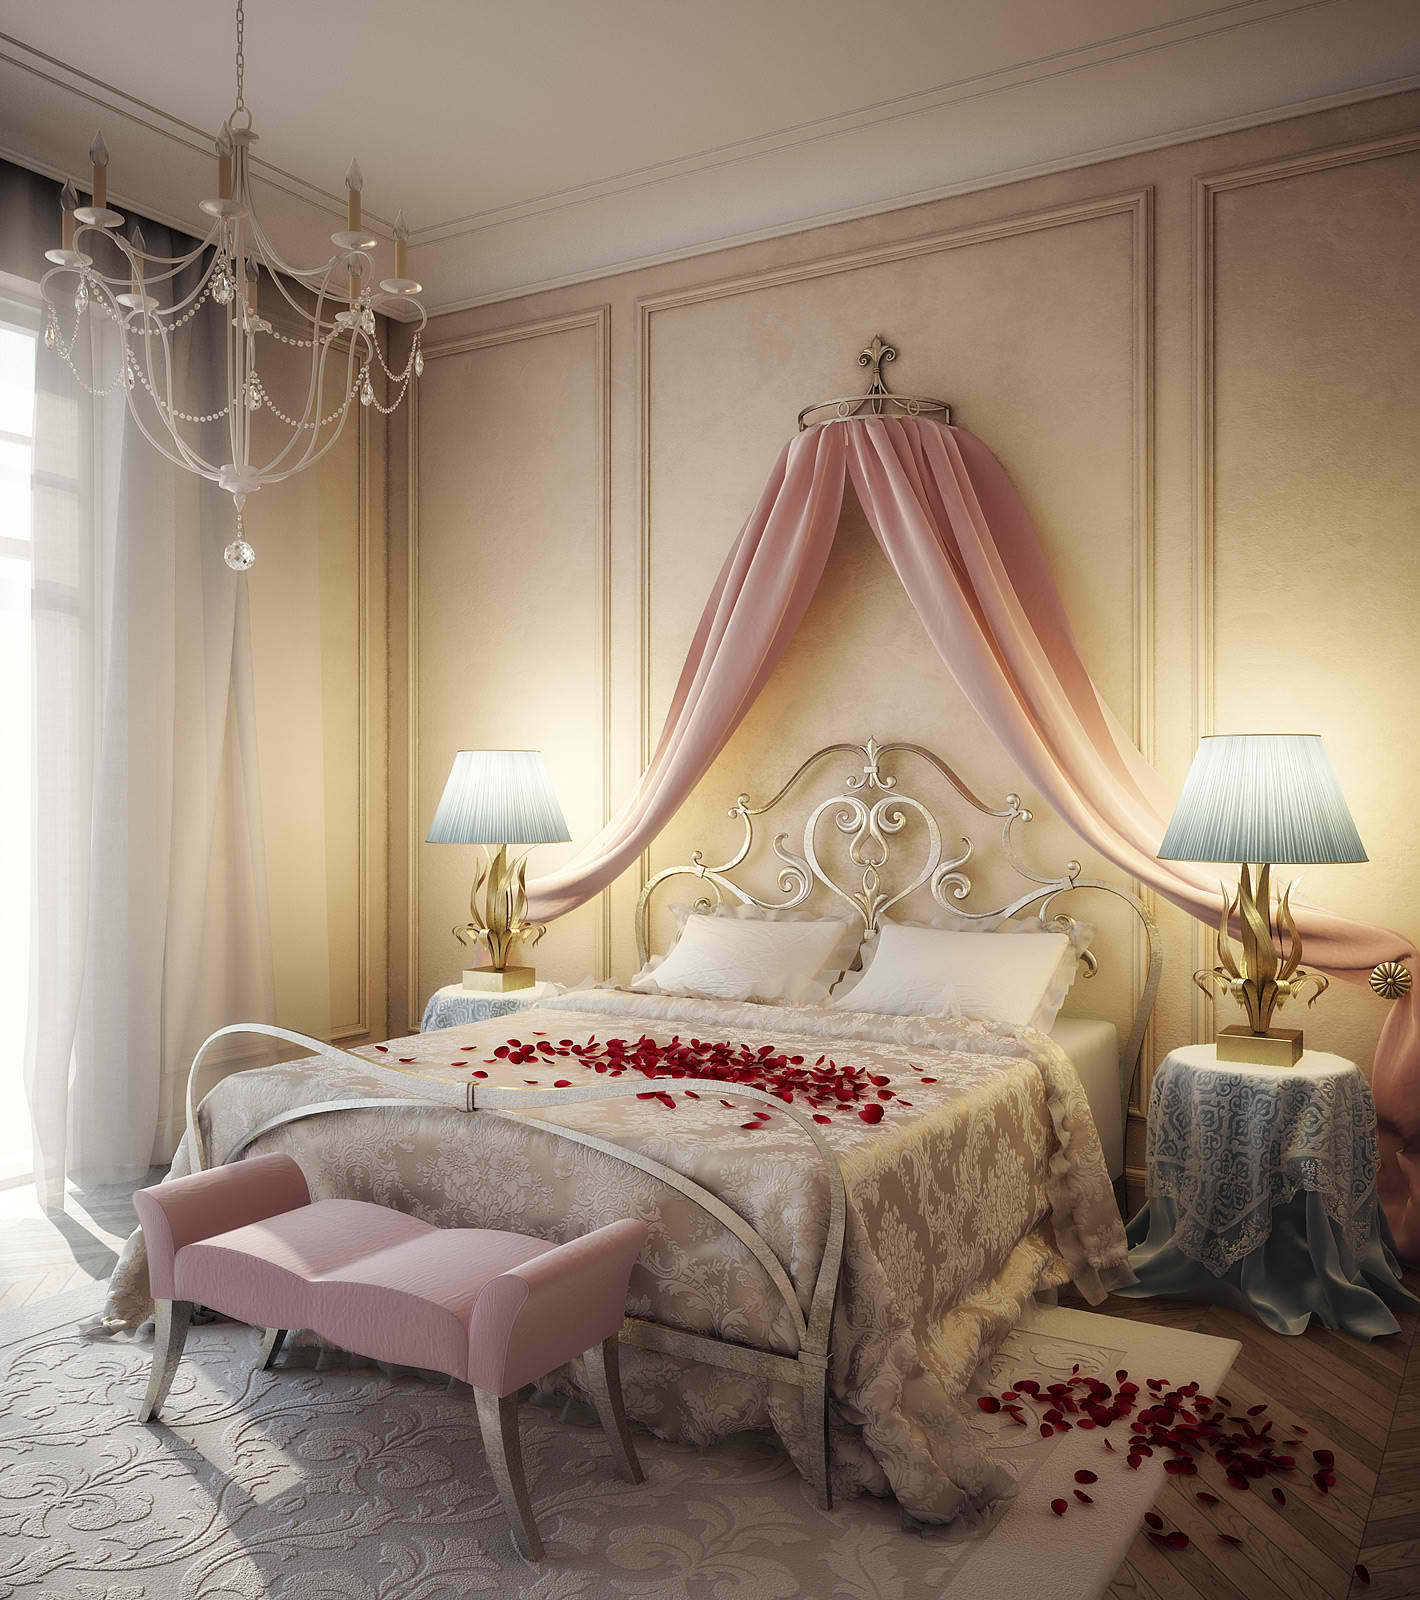 20 romantic bedroom ideas decoholic for Bedroom ideas romantic